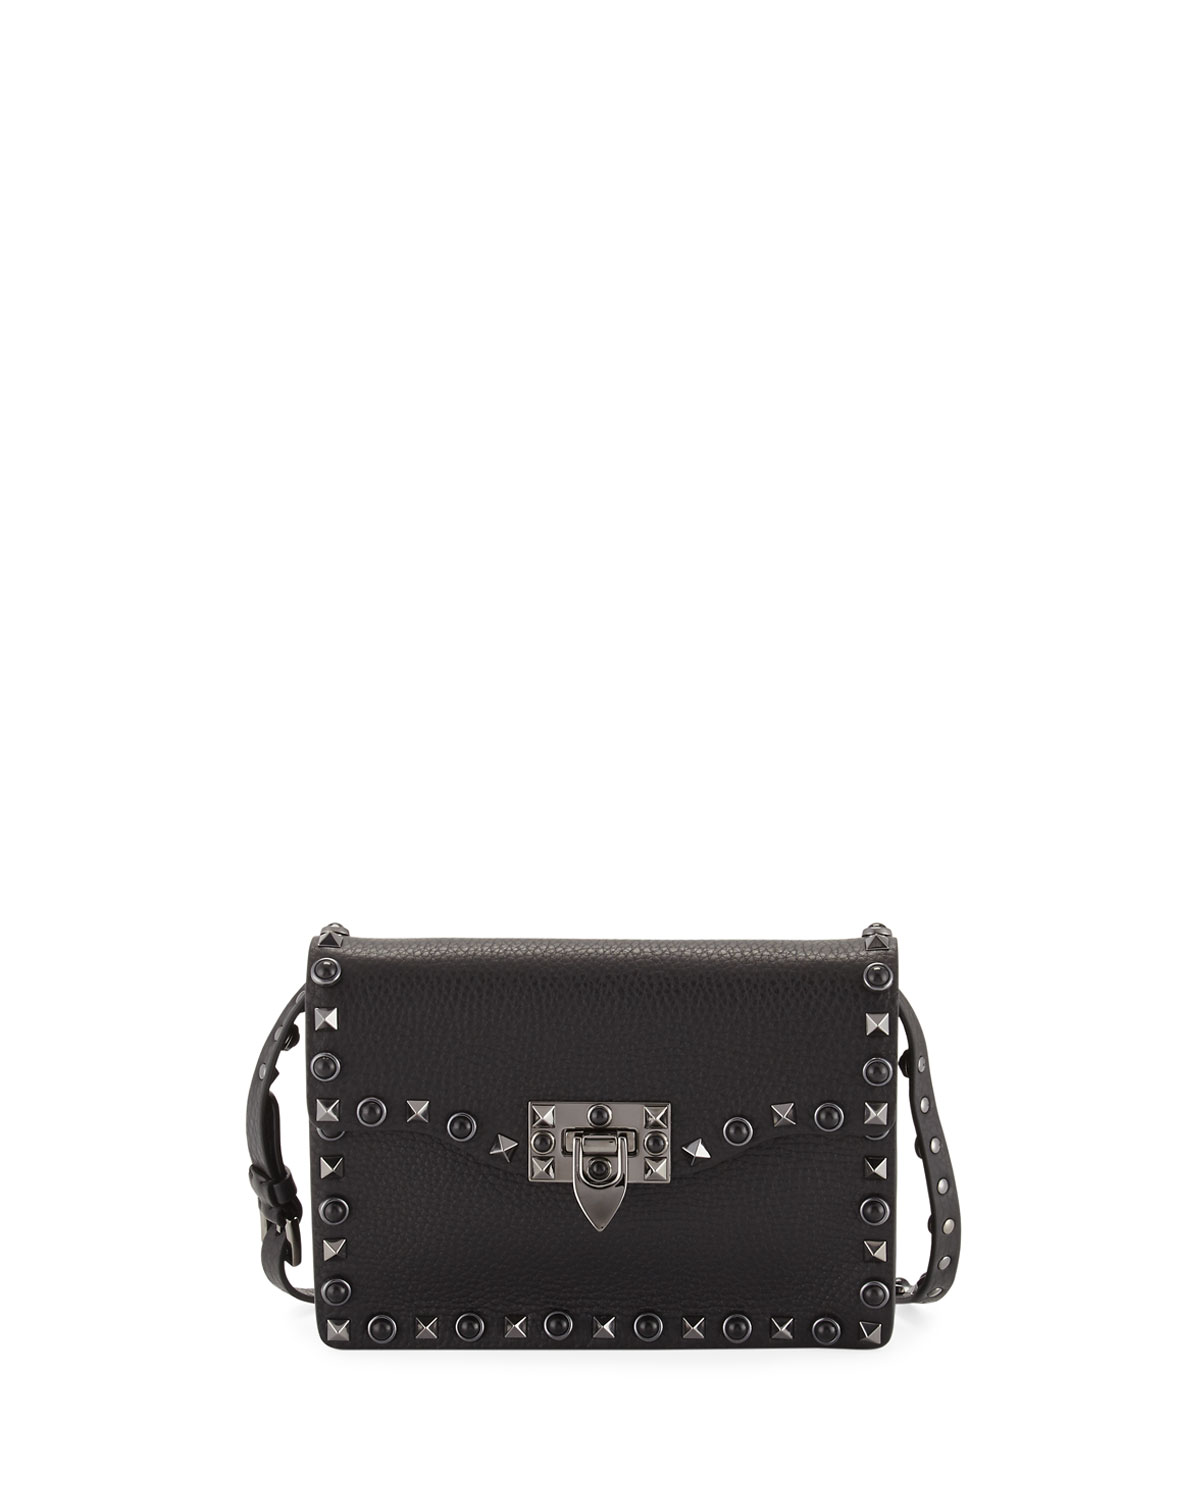 a4746c57990 Valentino Garavani Rockstud Rolling Noir Guitar Medium Shoulder Bag ...